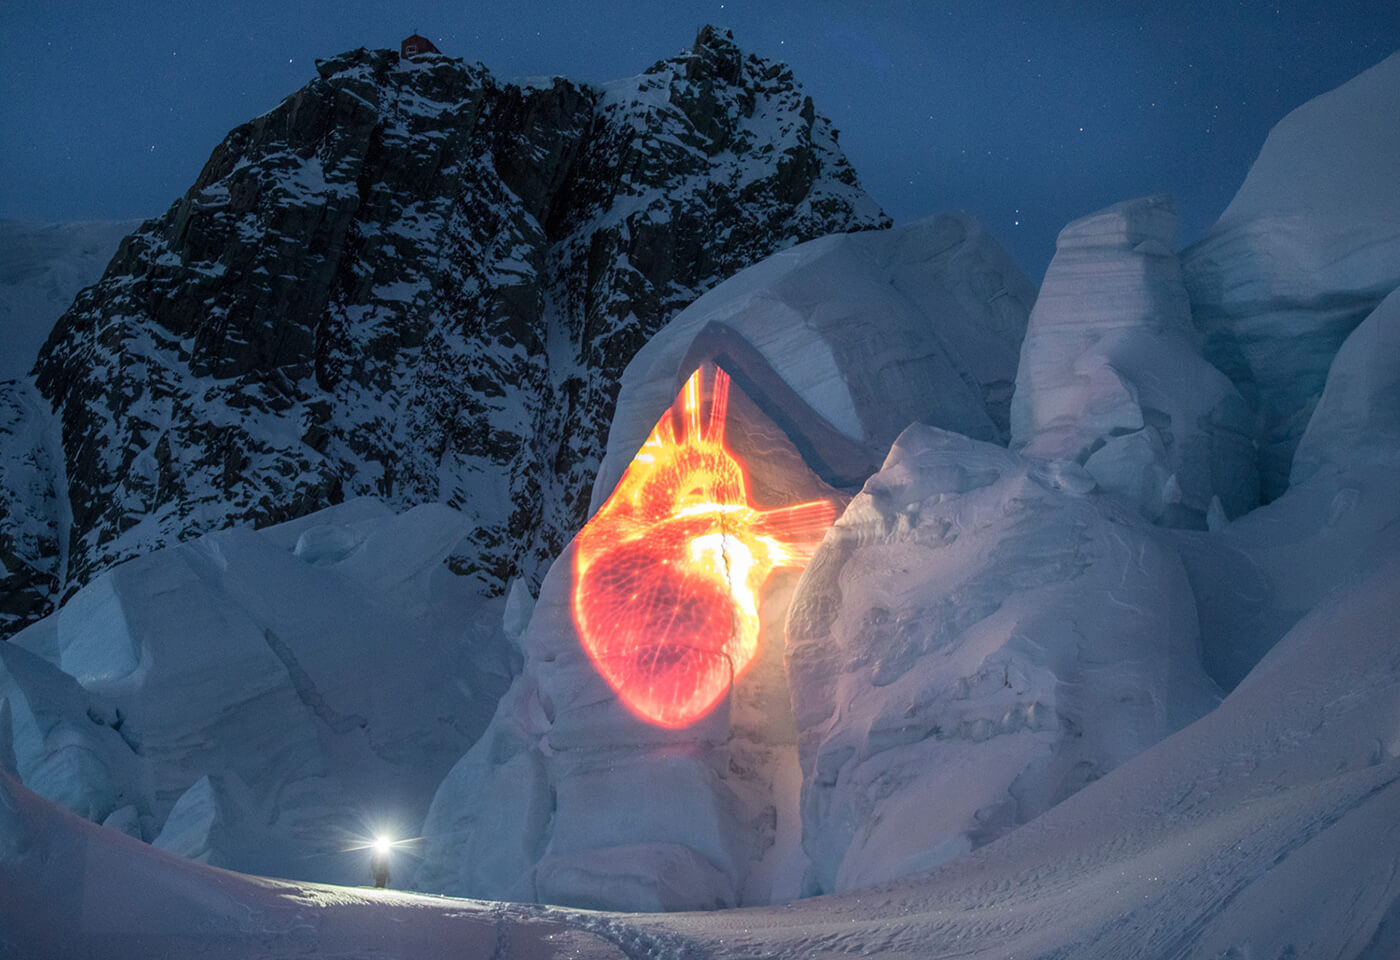 Heart image projected on glacier